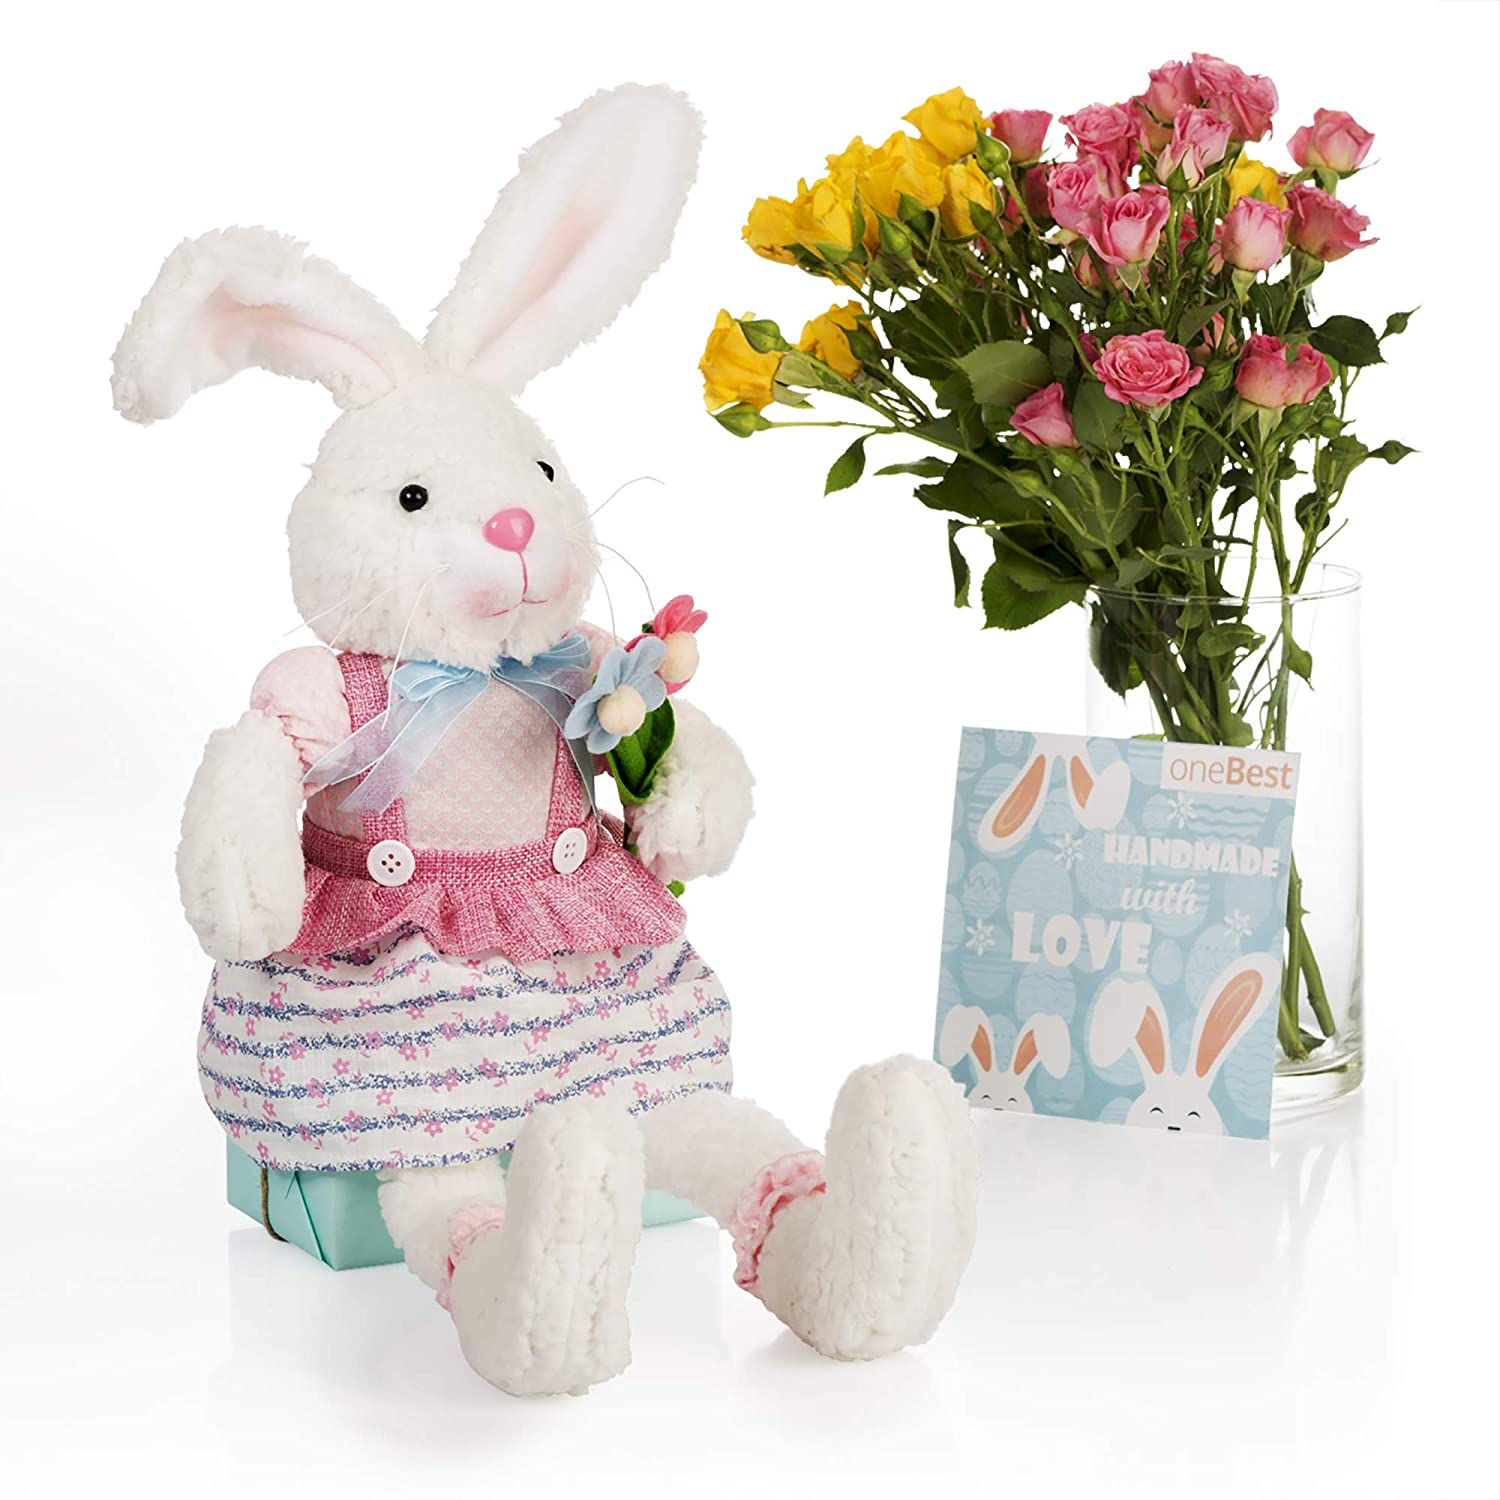 Onebest Easter Bunny Stuffed Animal 25 Easter Gifts for Boys Girls Kids Women Easter Toy Bunny Plush Peter Rabbit Stuffed Animals Blue Rabbit Currot